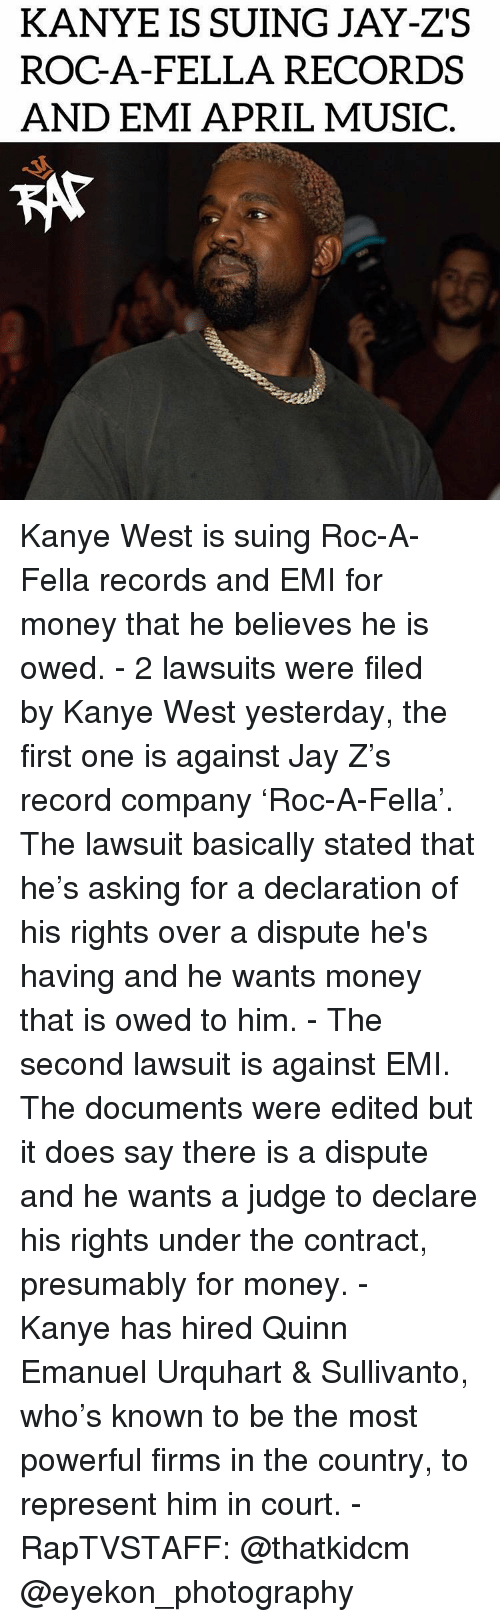 Jay, Jay Z, and Kanye: KANYE IS SUING JAY-ZS  ROC-A-FELLA RECORDS  AND EMI APRIL MUSIC  KAT Kanye West is suing Roc-A-Fella records and EMI for money that he believes he is owed. - 2 lawsuits were filed by Kanye West yesterday, the first one is against Jay Z's record company 'Roc-A-Fella'. The lawsuit basically stated that he's asking for a declaration of his rights over a dispute he's having and he wants money that is owed to him. - The second lawsuit is against EMI. The documents were edited but it does say there is a dispute and he wants a judge to declare his rights under the contract, presumably for money. - Kanye has hired Quinn Emanuel Urquhart & Sullivanto, who's known to be the most powerful firms in the country, to represent him in court. - RapTVSTAFF: @thatkidcm @eyekon_photography